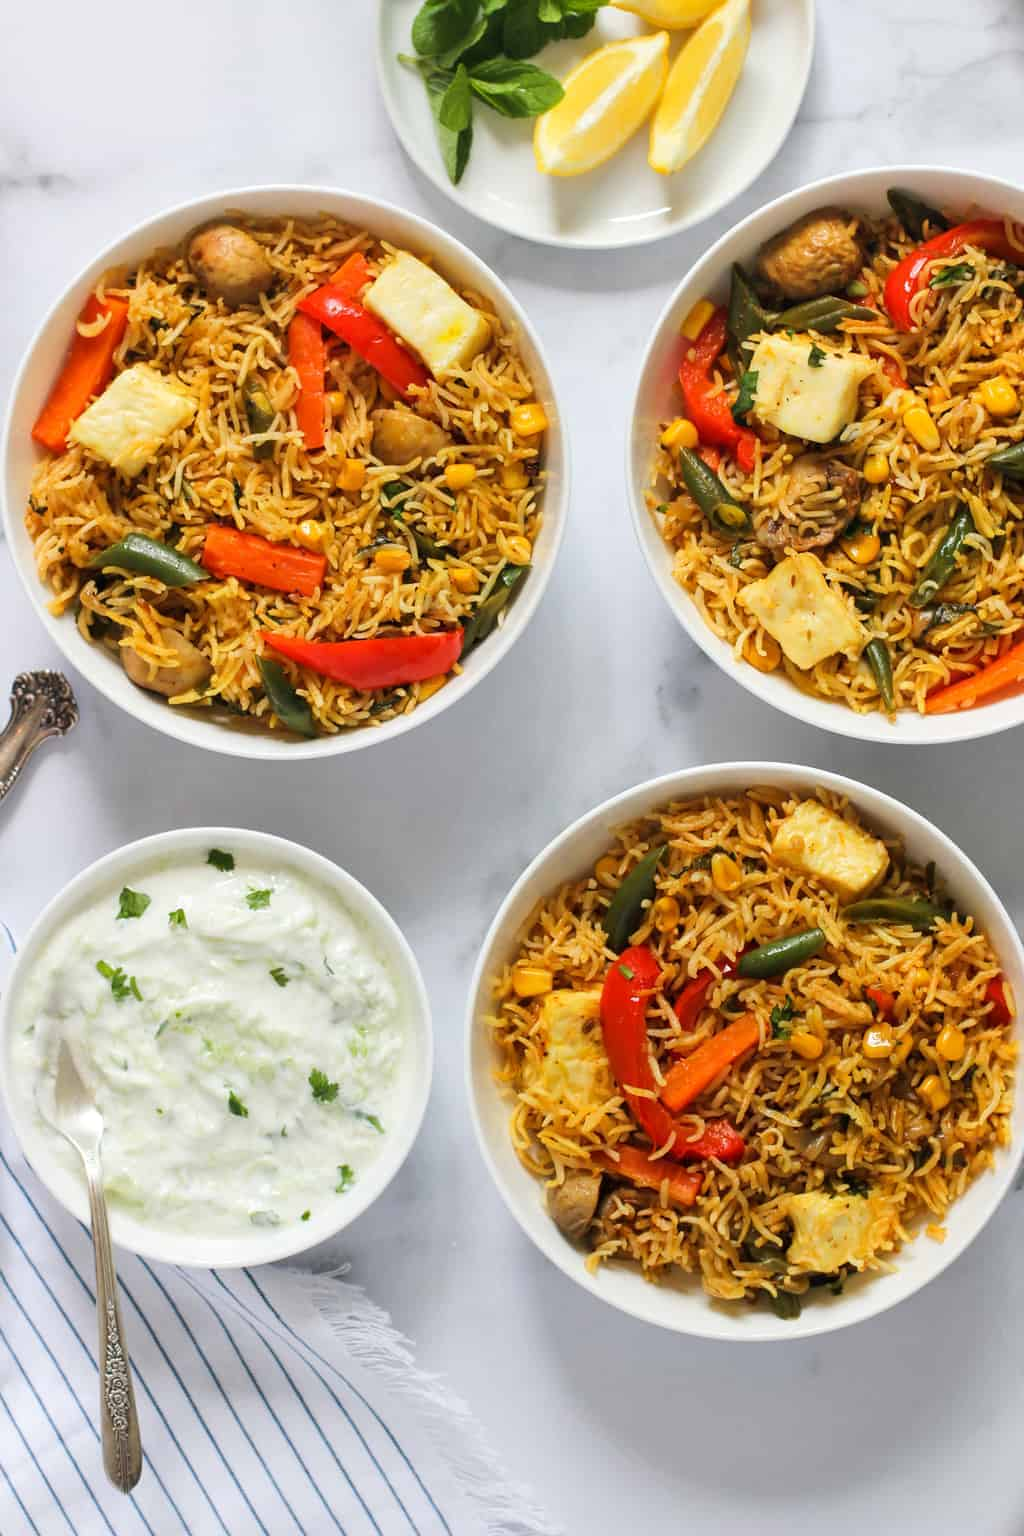 paneer and vegetable biryani served in 3 bowls with raita